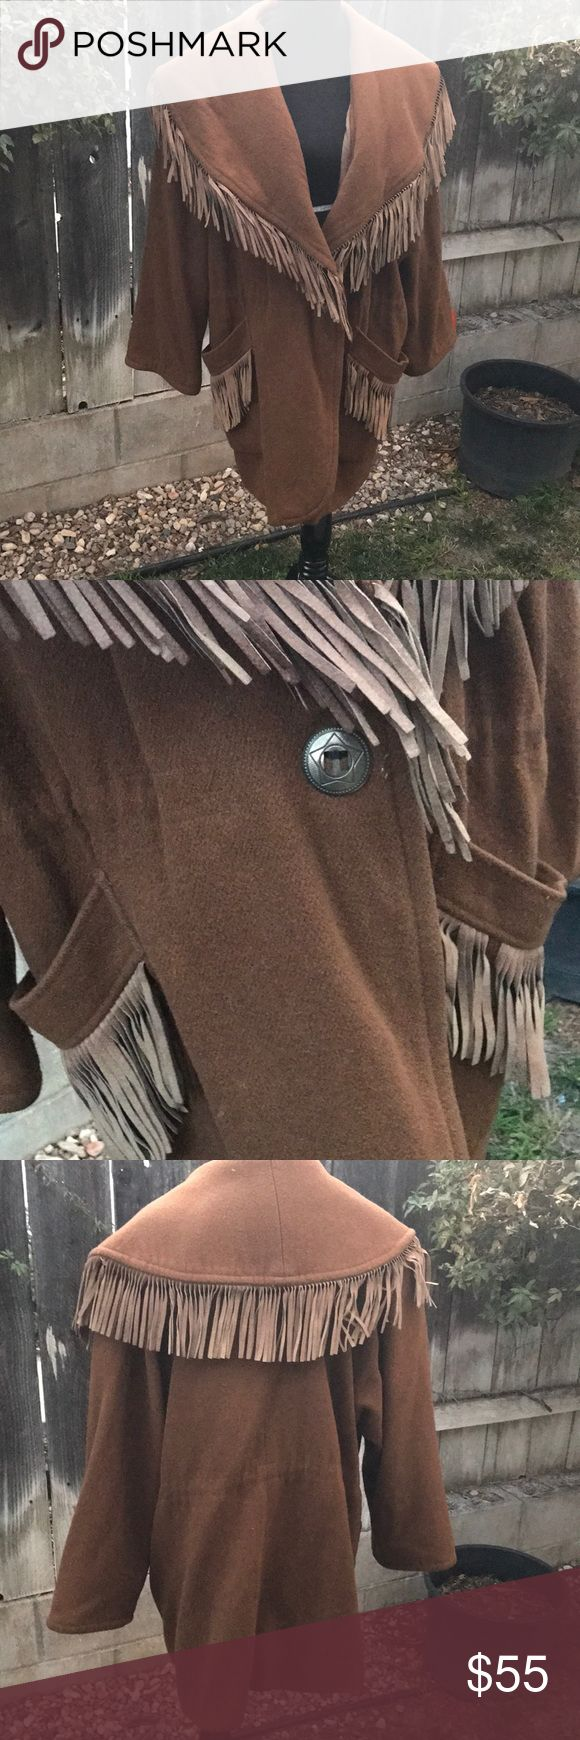 Amazing and WARM Wool and Leather Fringe Coat This coat is HEAVY! It's so amazing and warm...in fact it's way too warm for me on the beach of CA! It's fully lined, vintage, concho button detail. Beautiful, waiting for a chilly home 😊 no size, fits like an XL but will fit a range. Toggle drawstring on both sides to cinch it up if you like.  This item will require extra shipping on my part because it exceeds the five pound weight limit. Vintage Jackets & Coats Capes